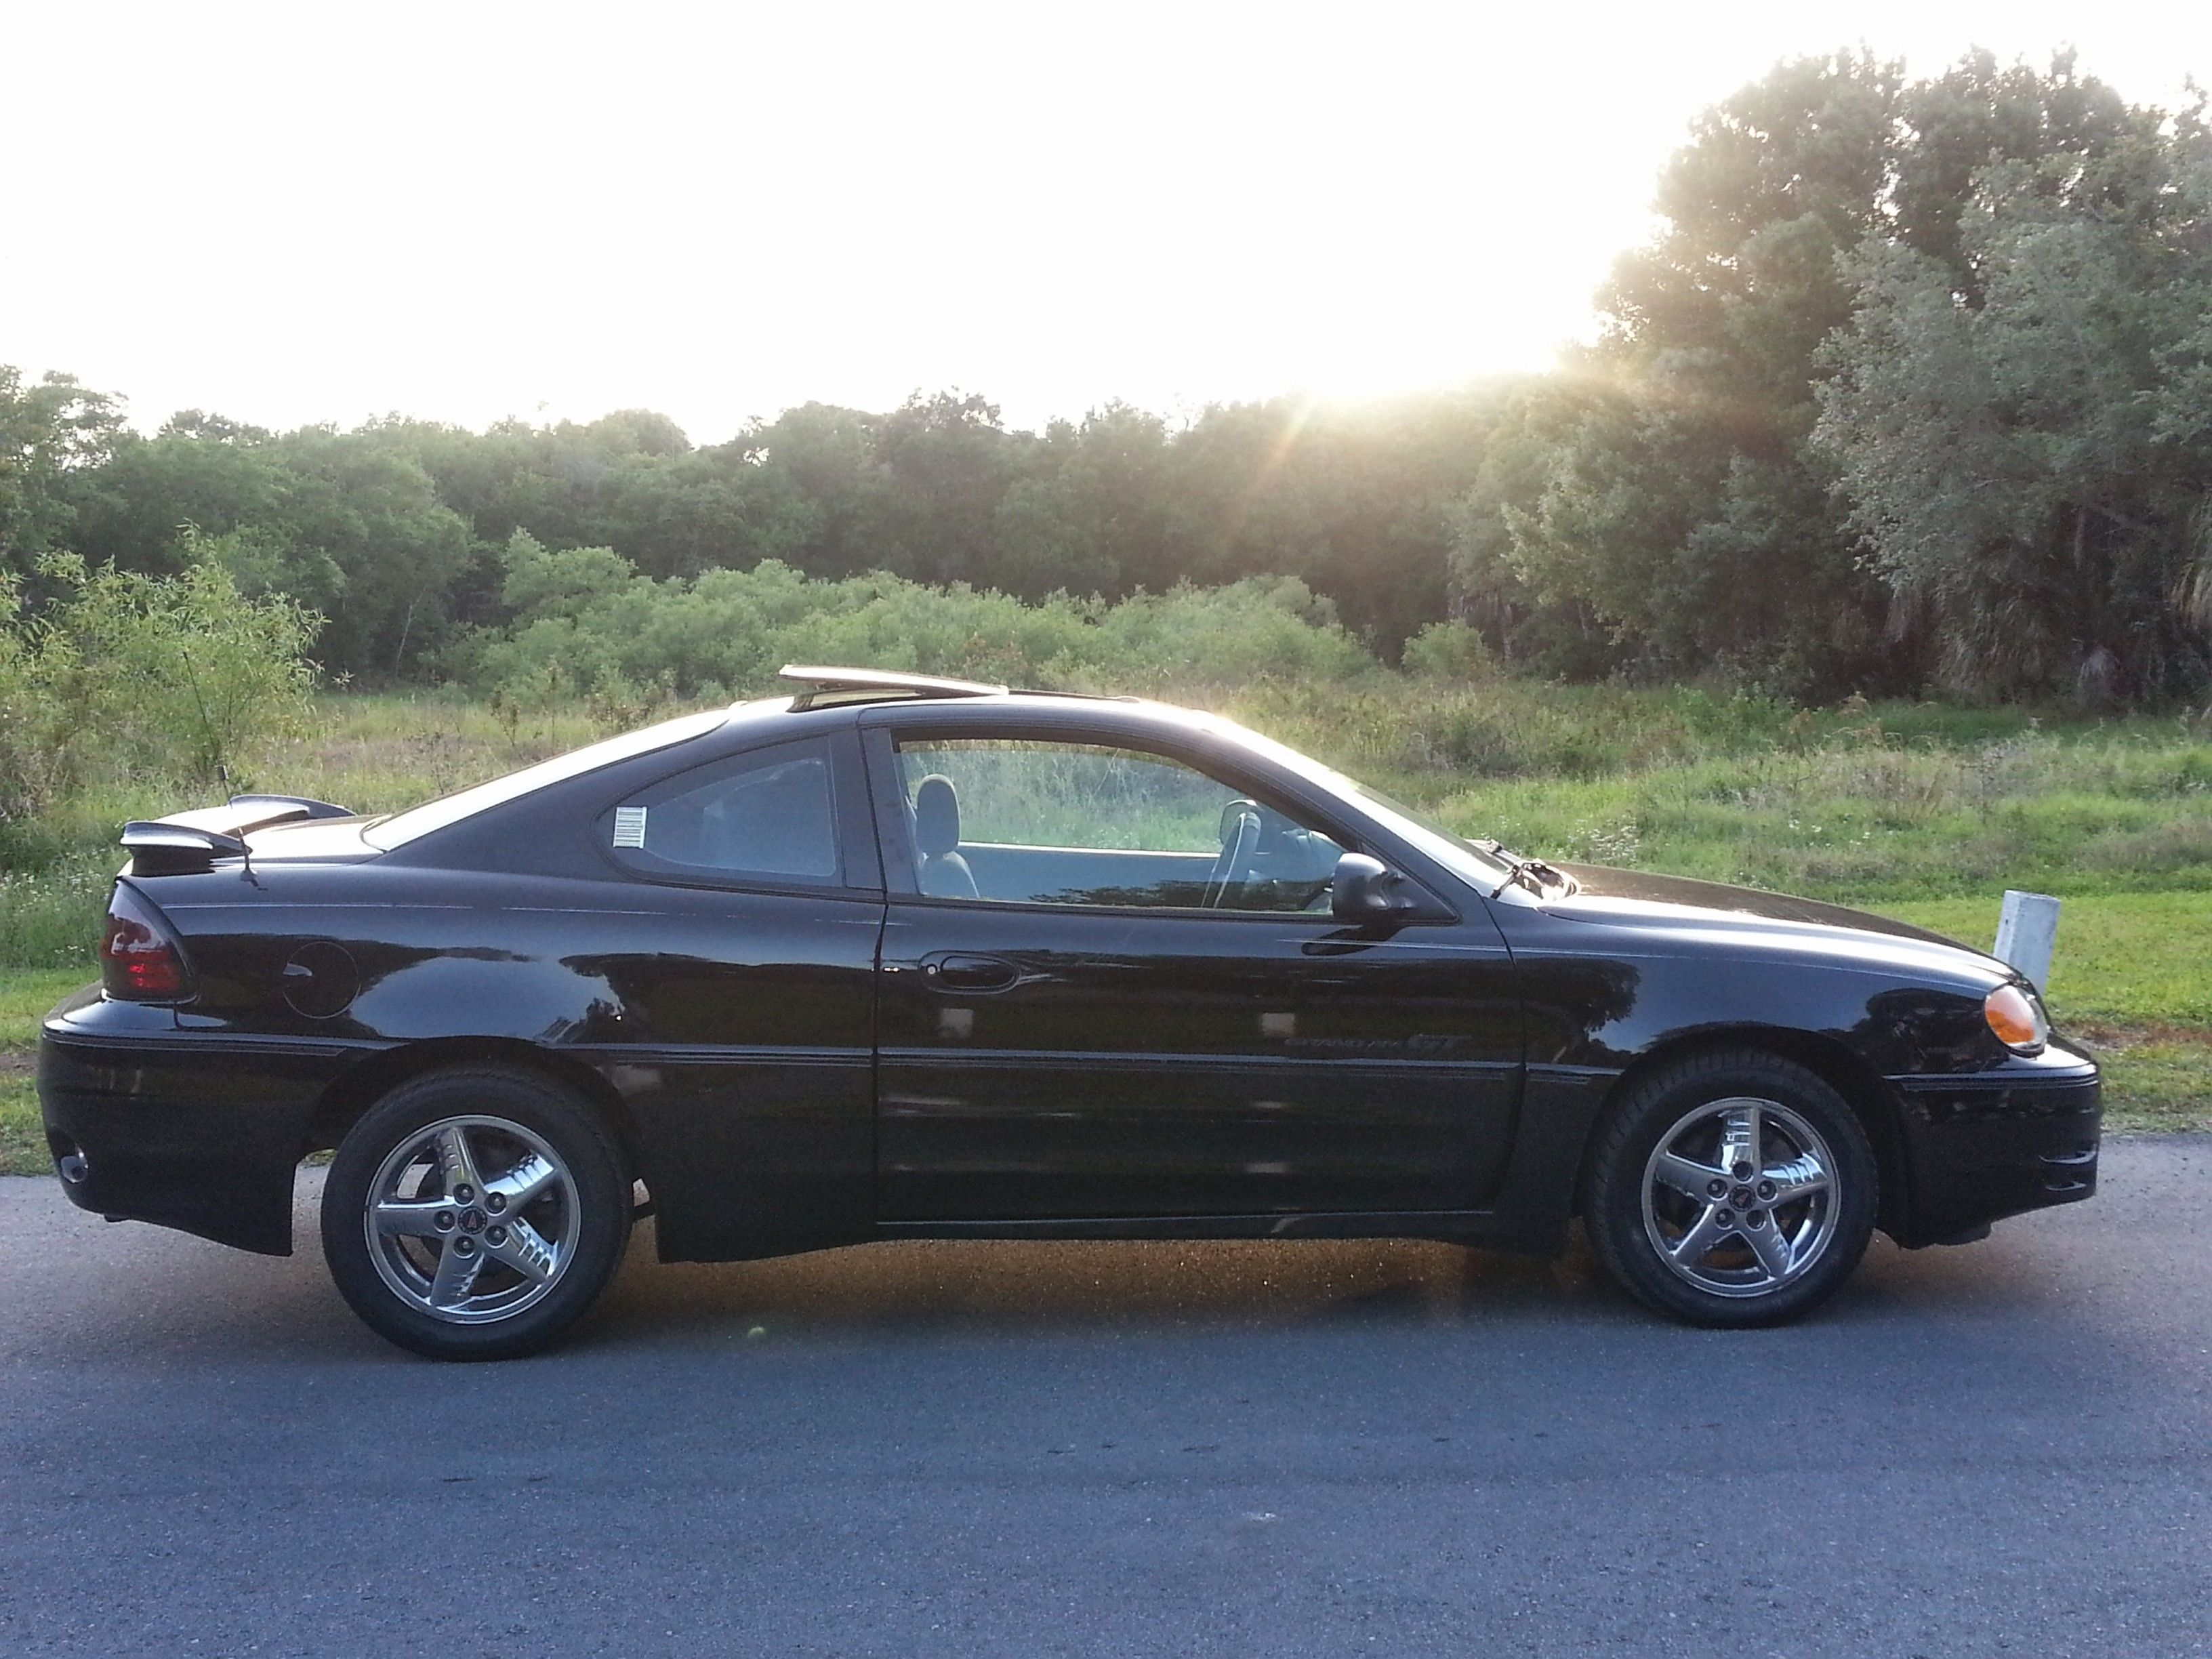 2000 Pontiac Grand Am Gt Fully Loaded And Ready For Delivery 813 321 7959 813 900 5522